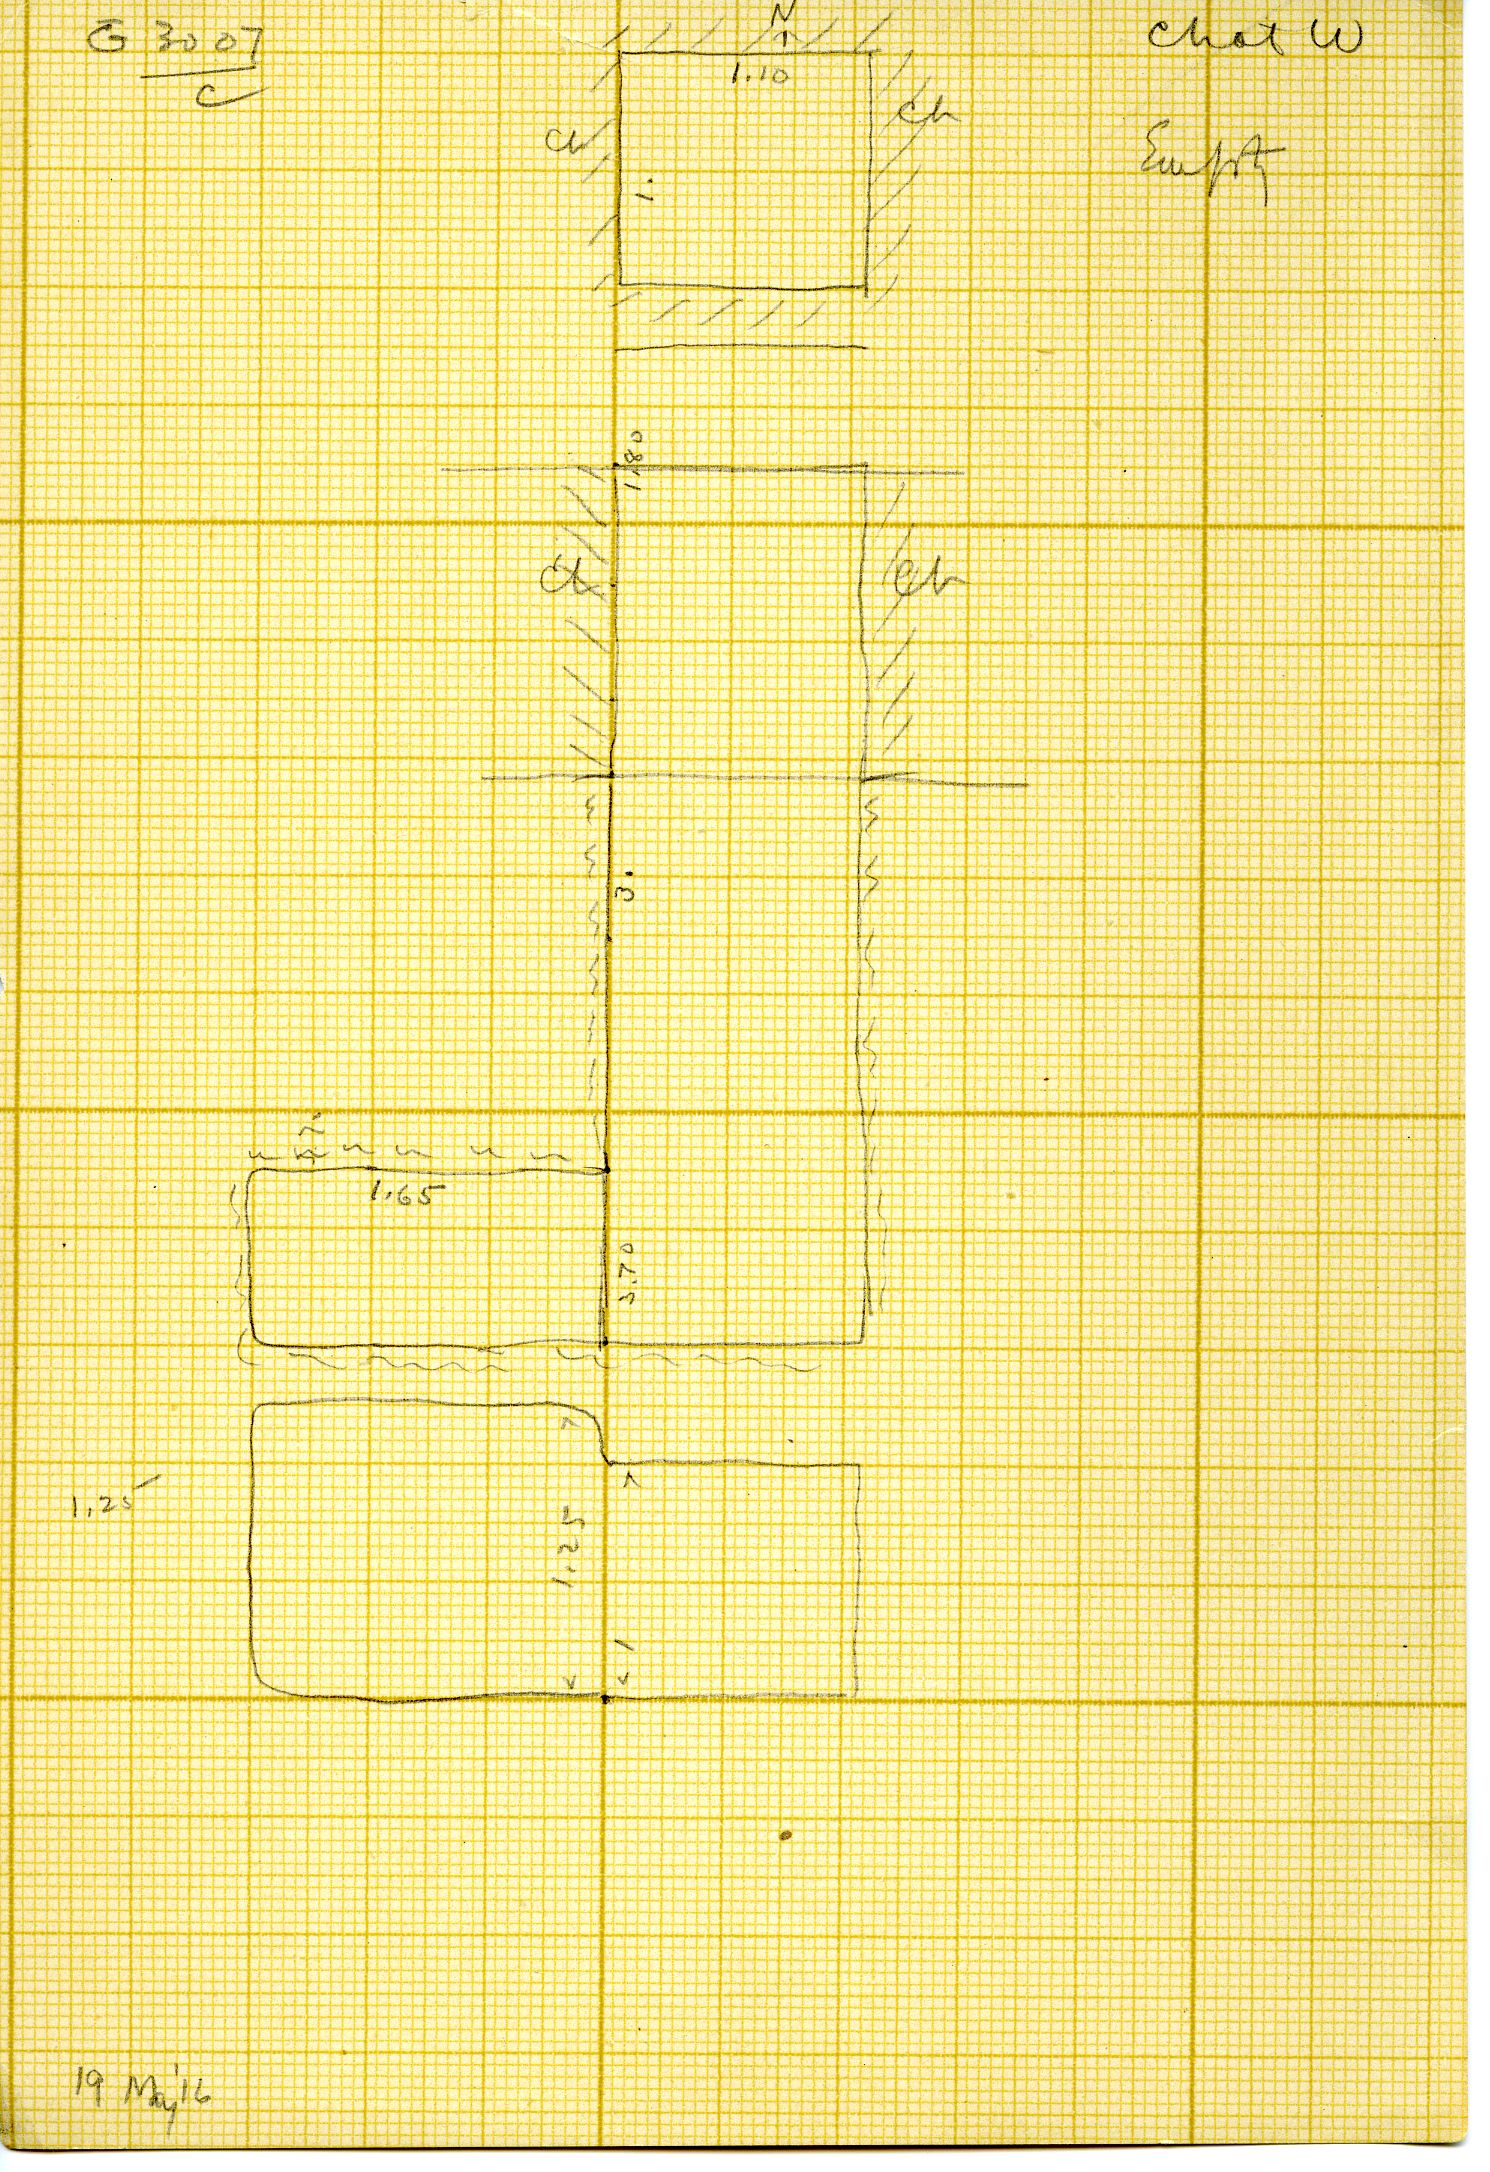 Maps and plans: G 3007, Shaft C